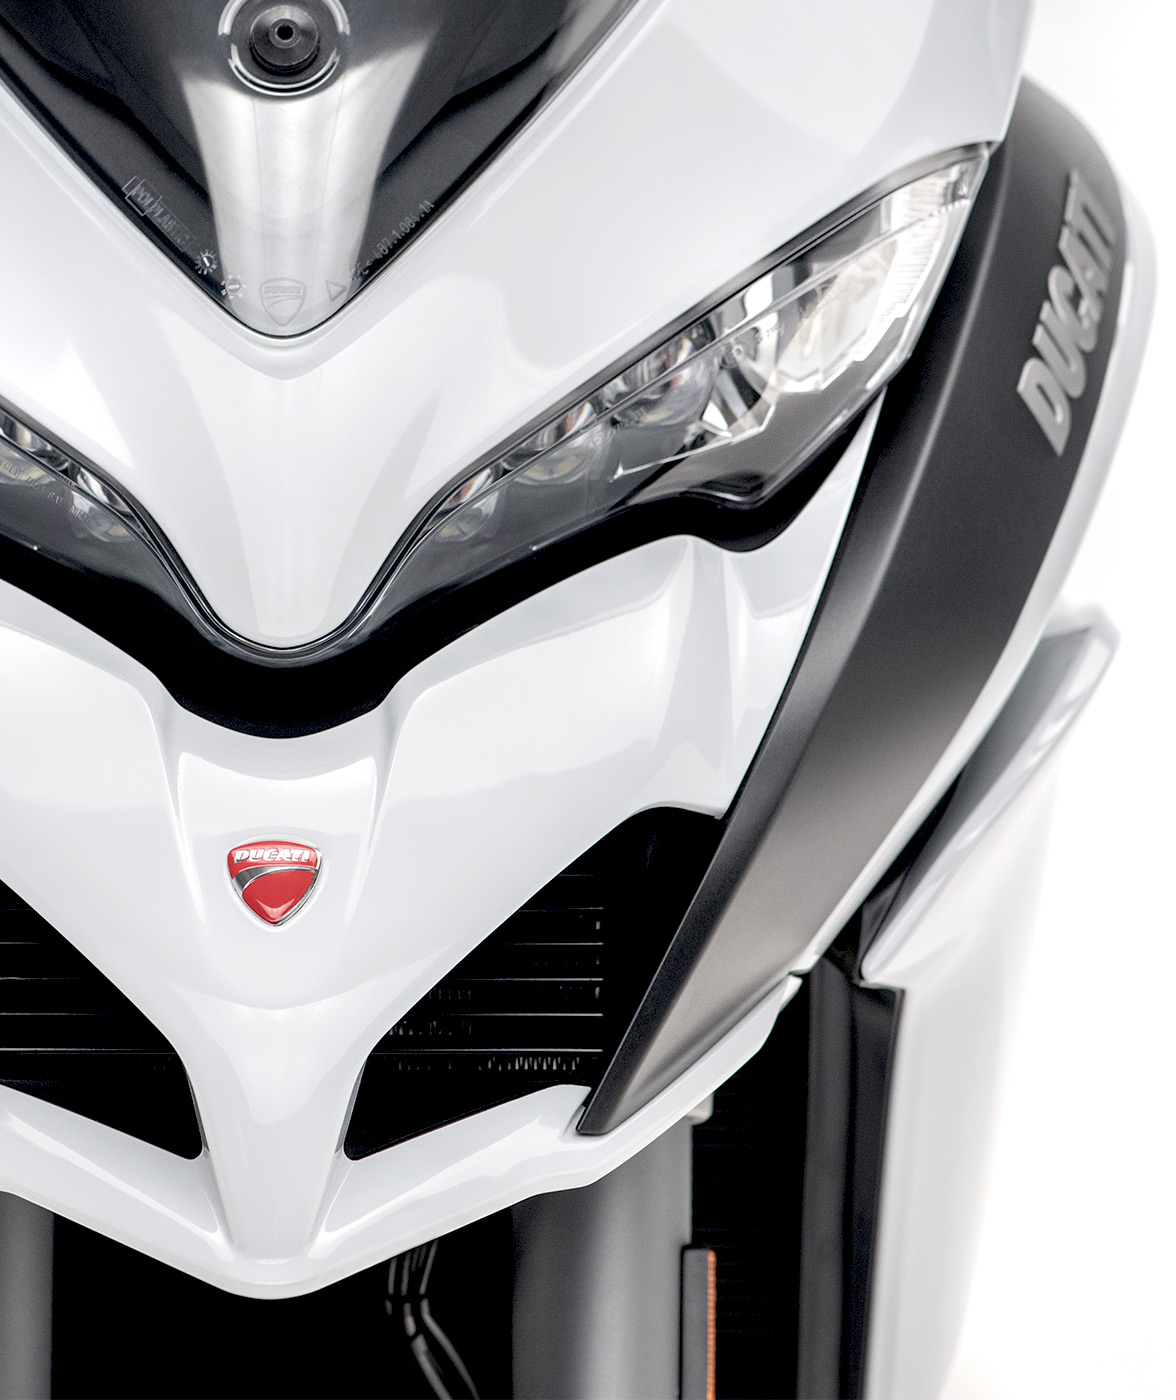 ducati approved – ducati certified pre-owned